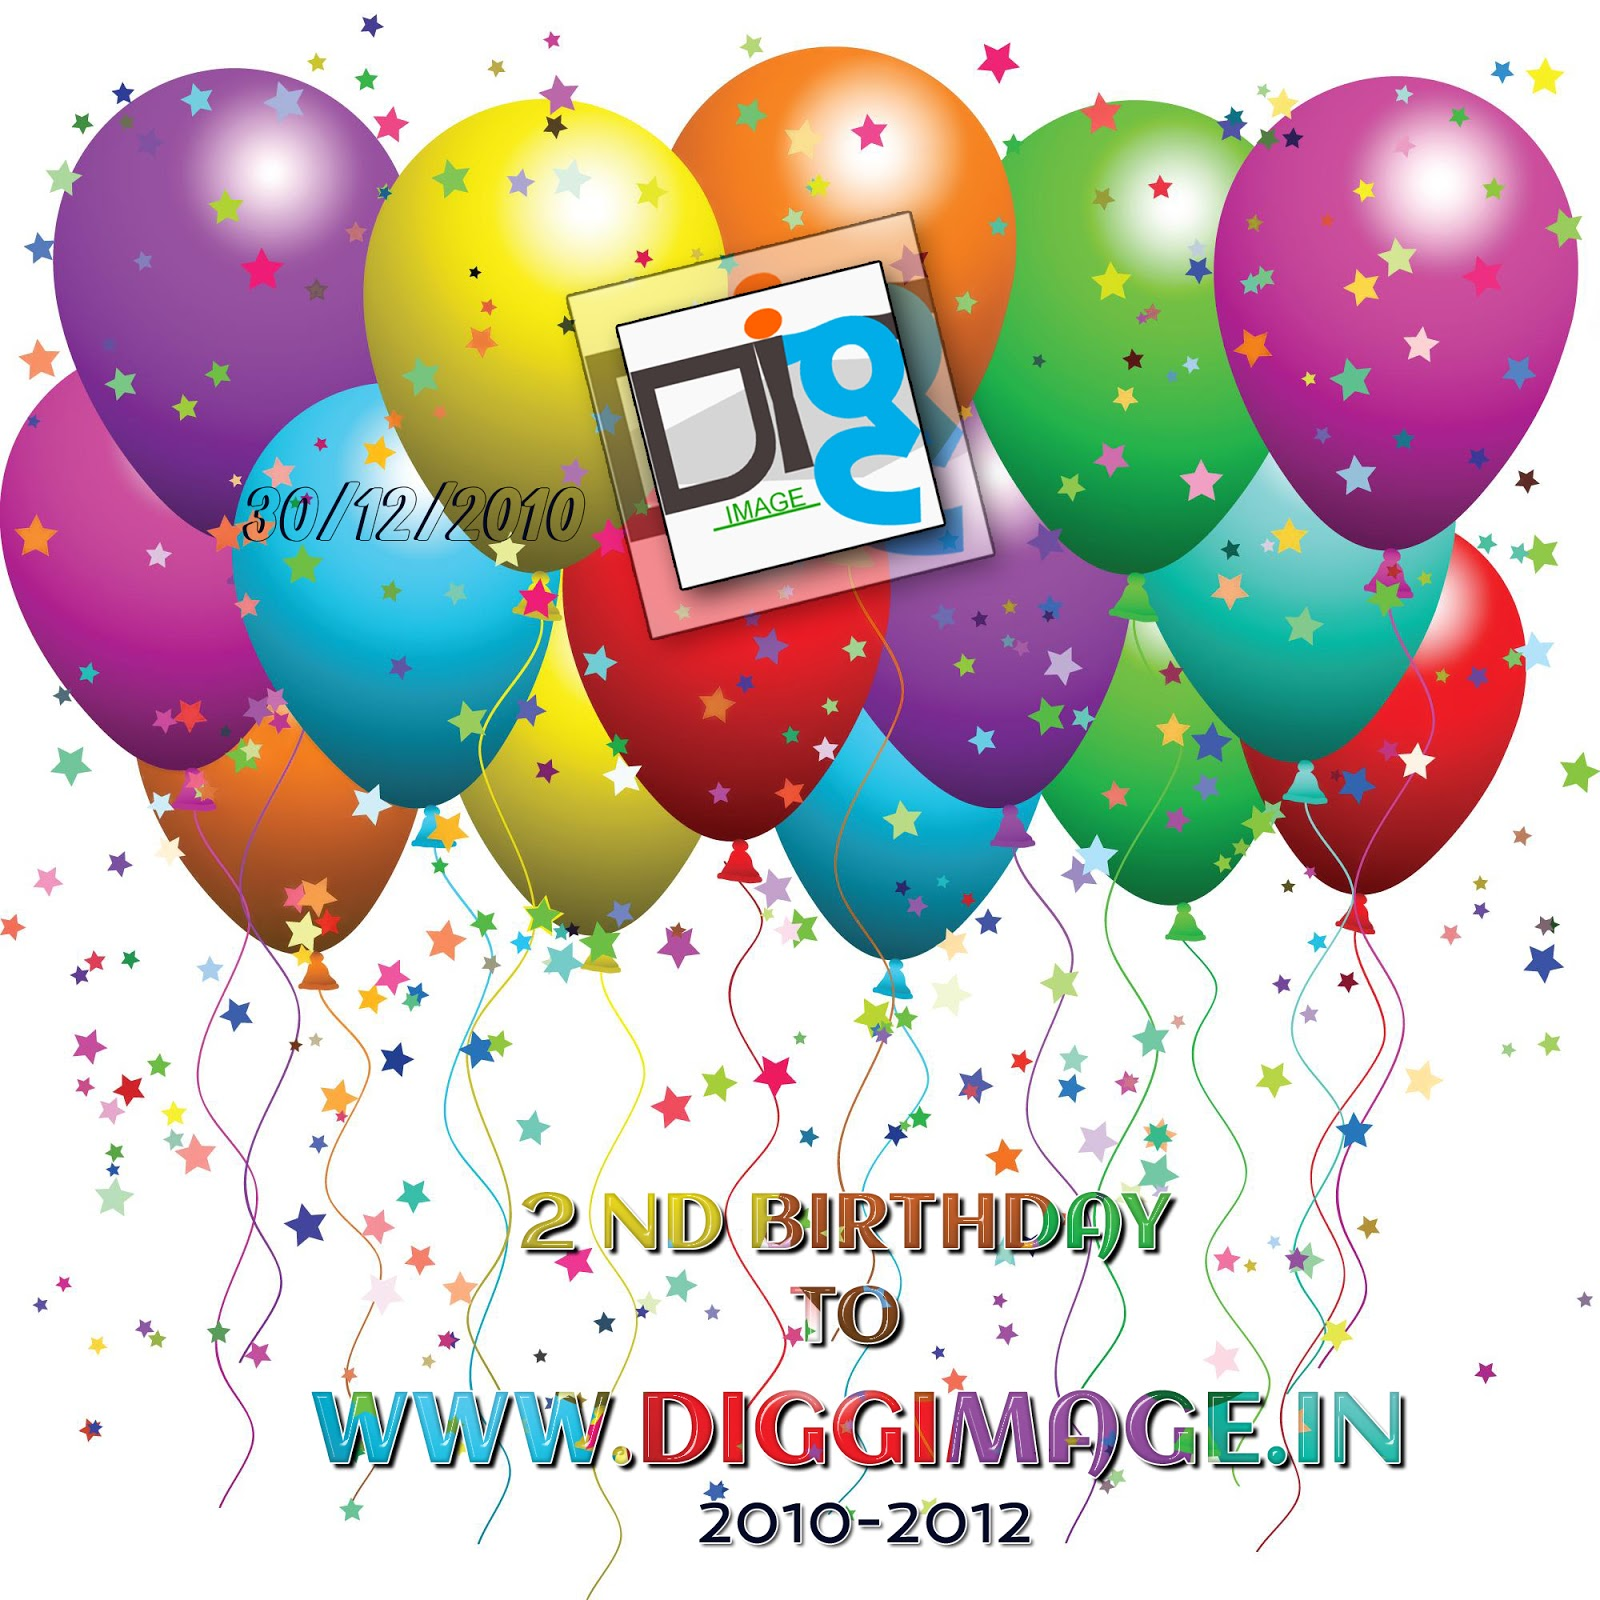 Diggimage website birthday